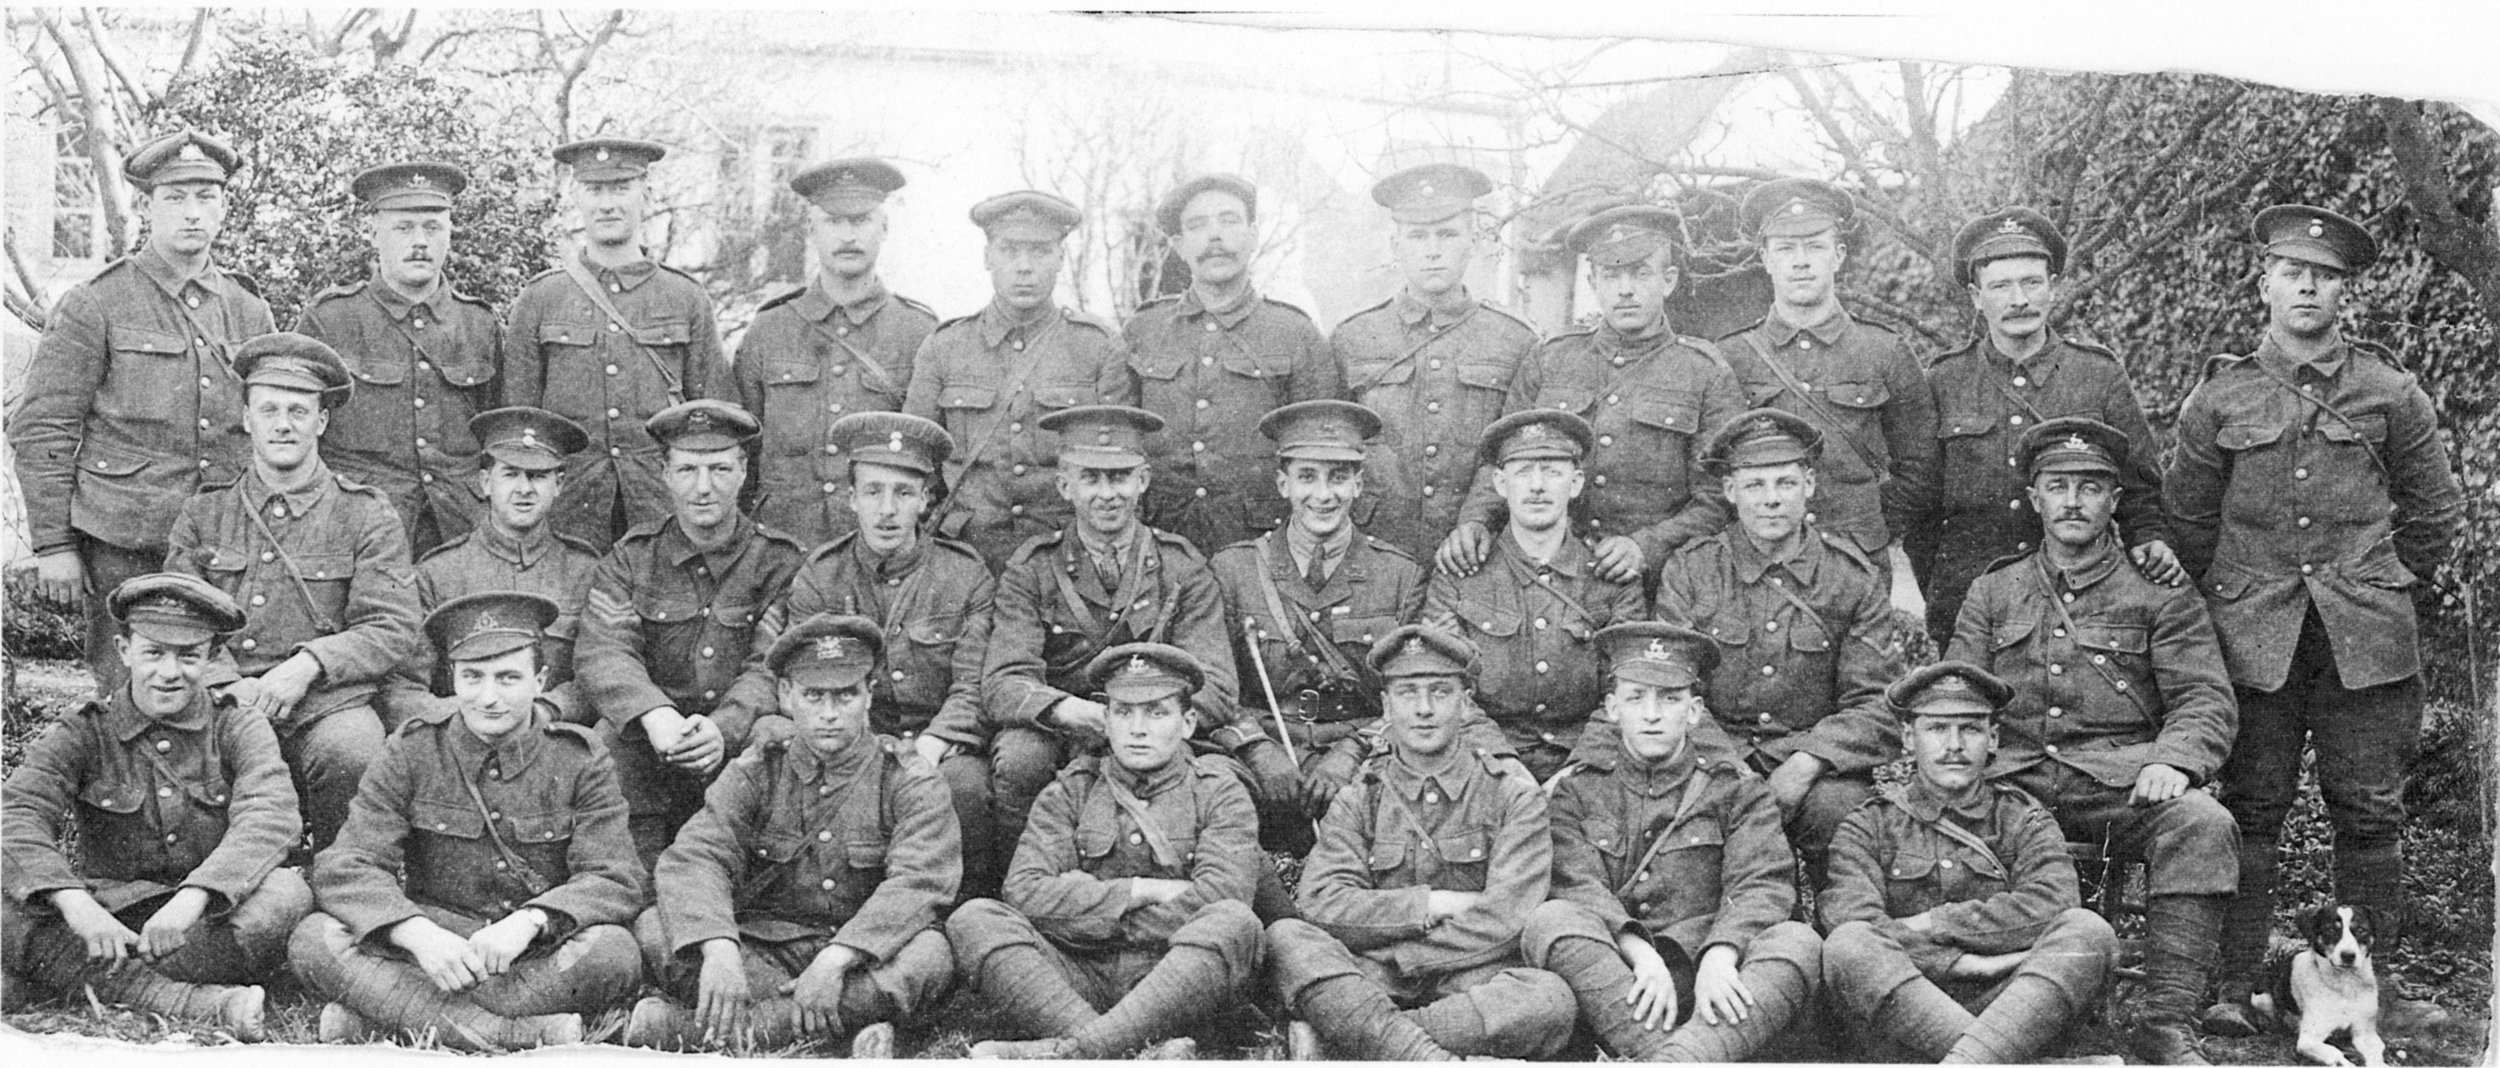 Grenadier Company of the 1st Royal Welch Fusilier.   Joseph Witton on the extreme right. Siegfried Sassoon, the WW1 Poet, 6th from the left in the middle row.